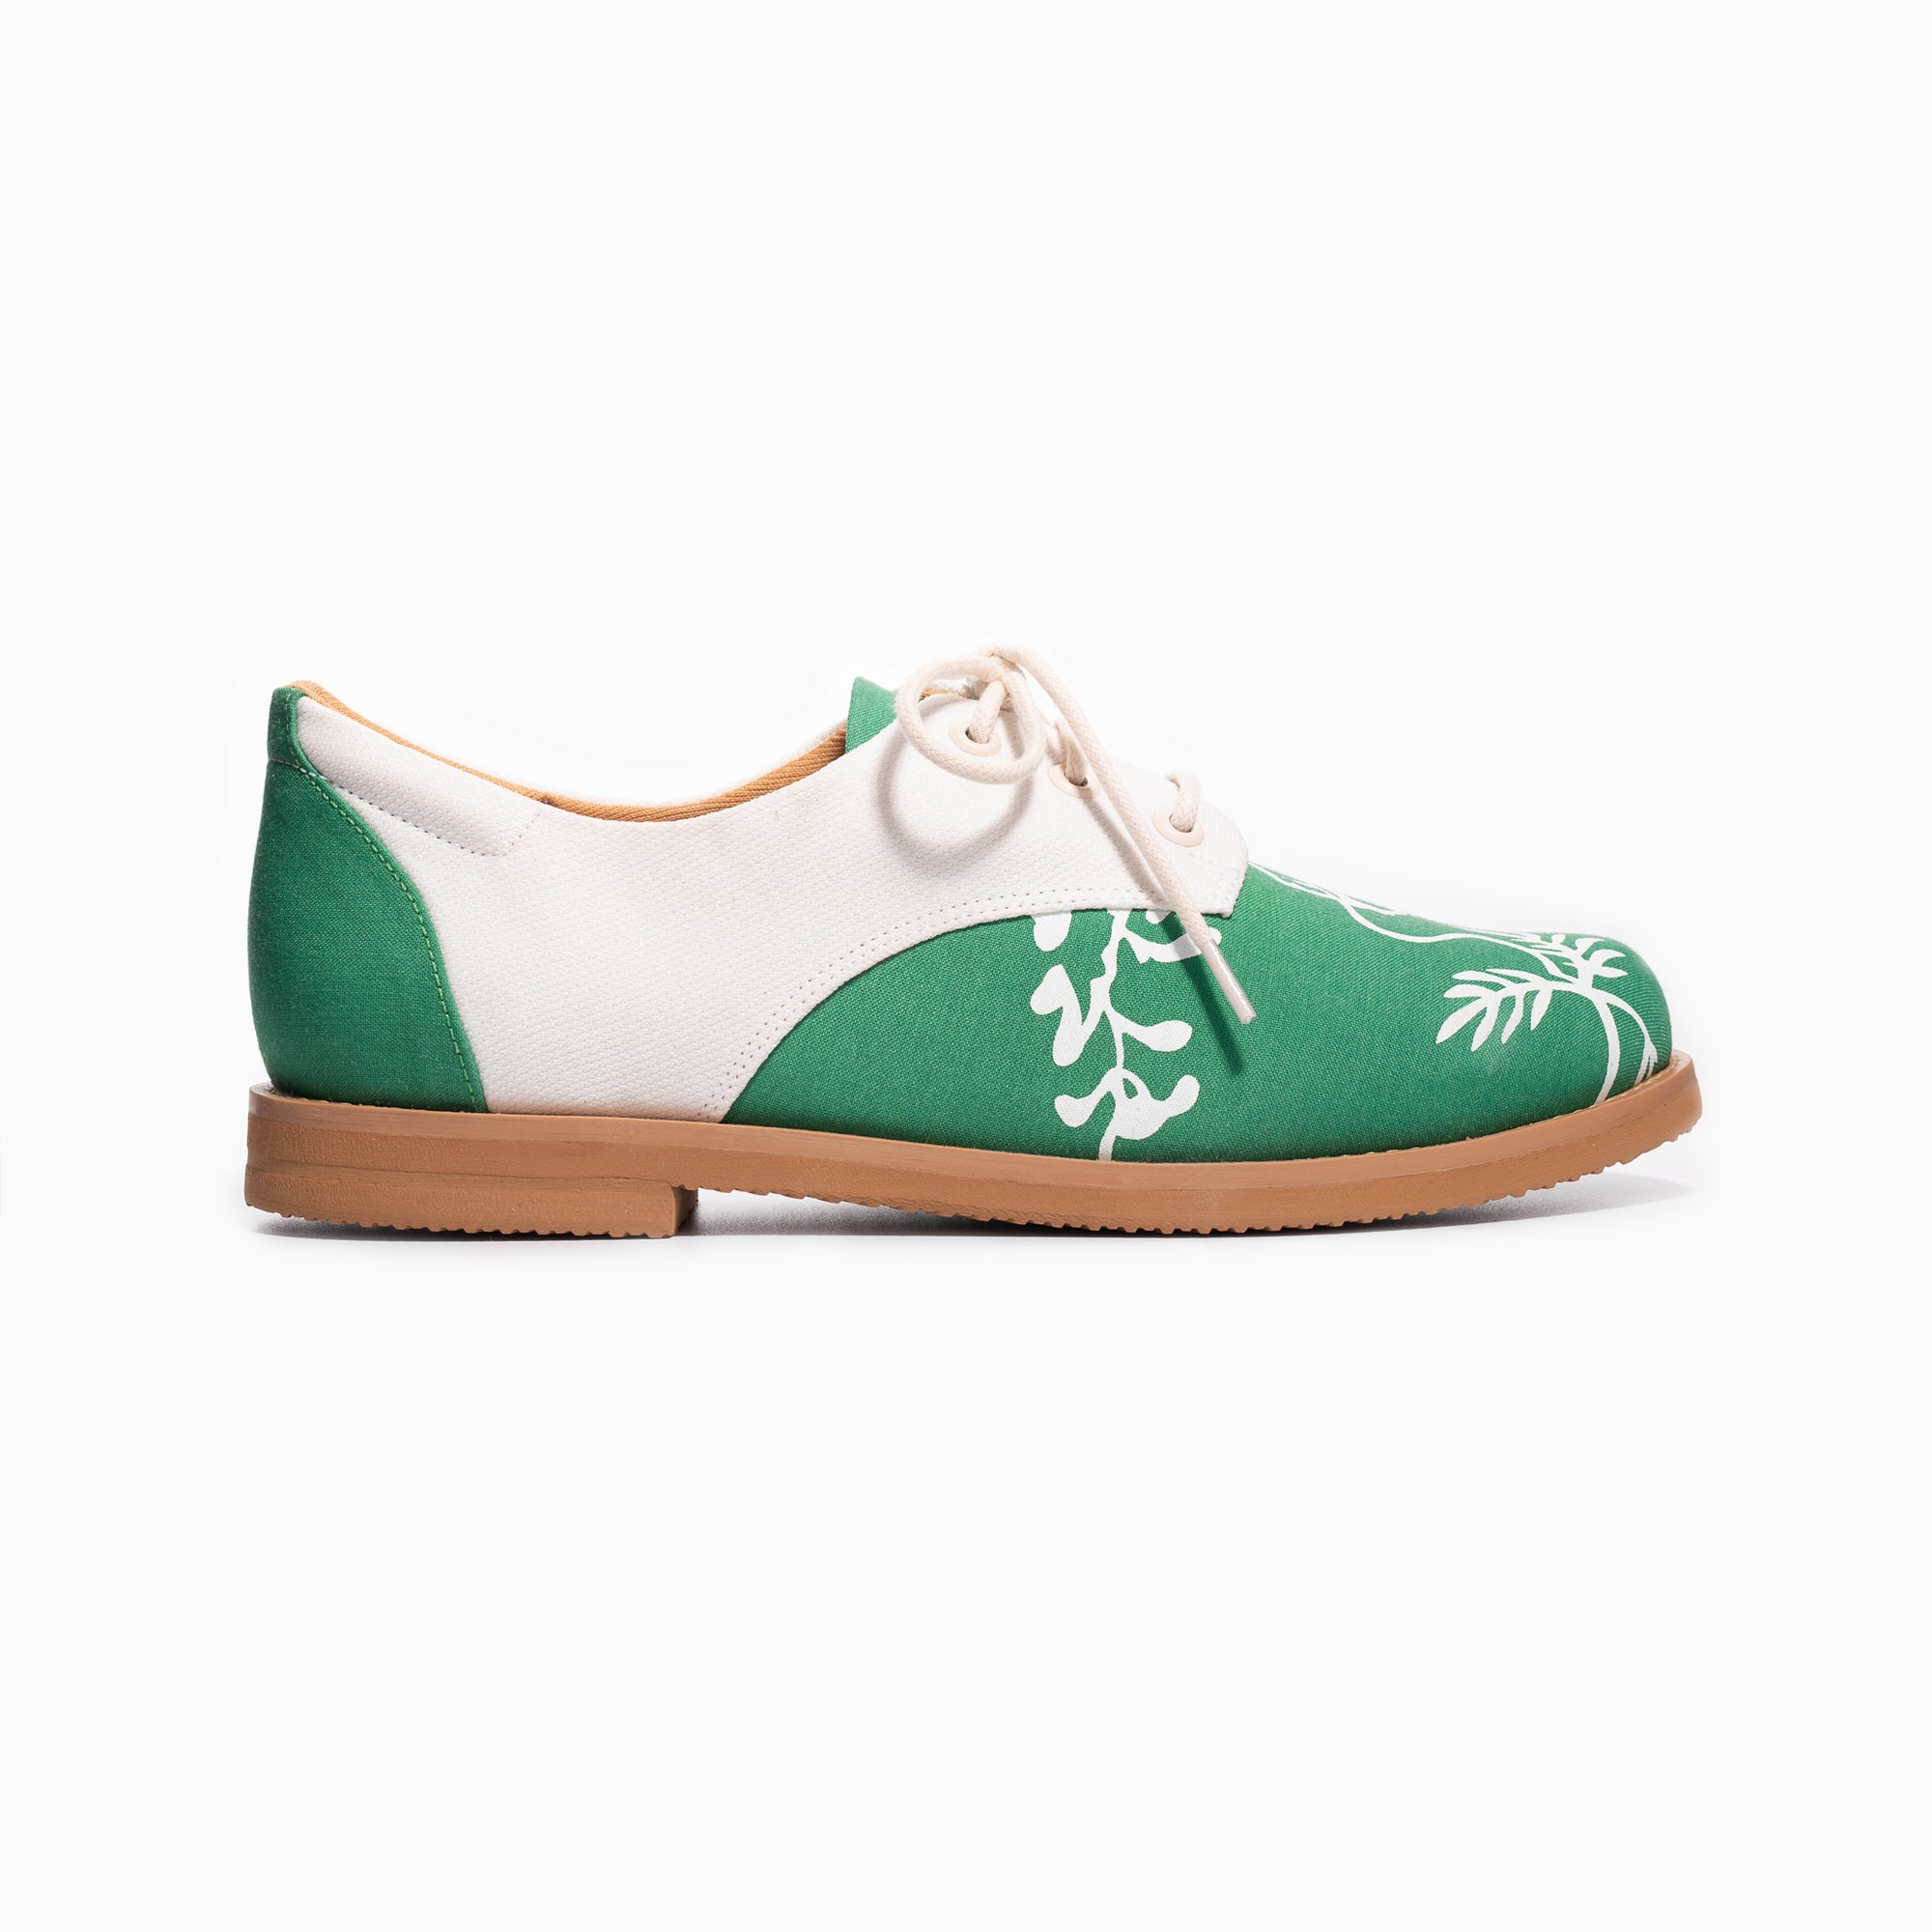 NADIA OXFORD - Insecta Shoes Brasil